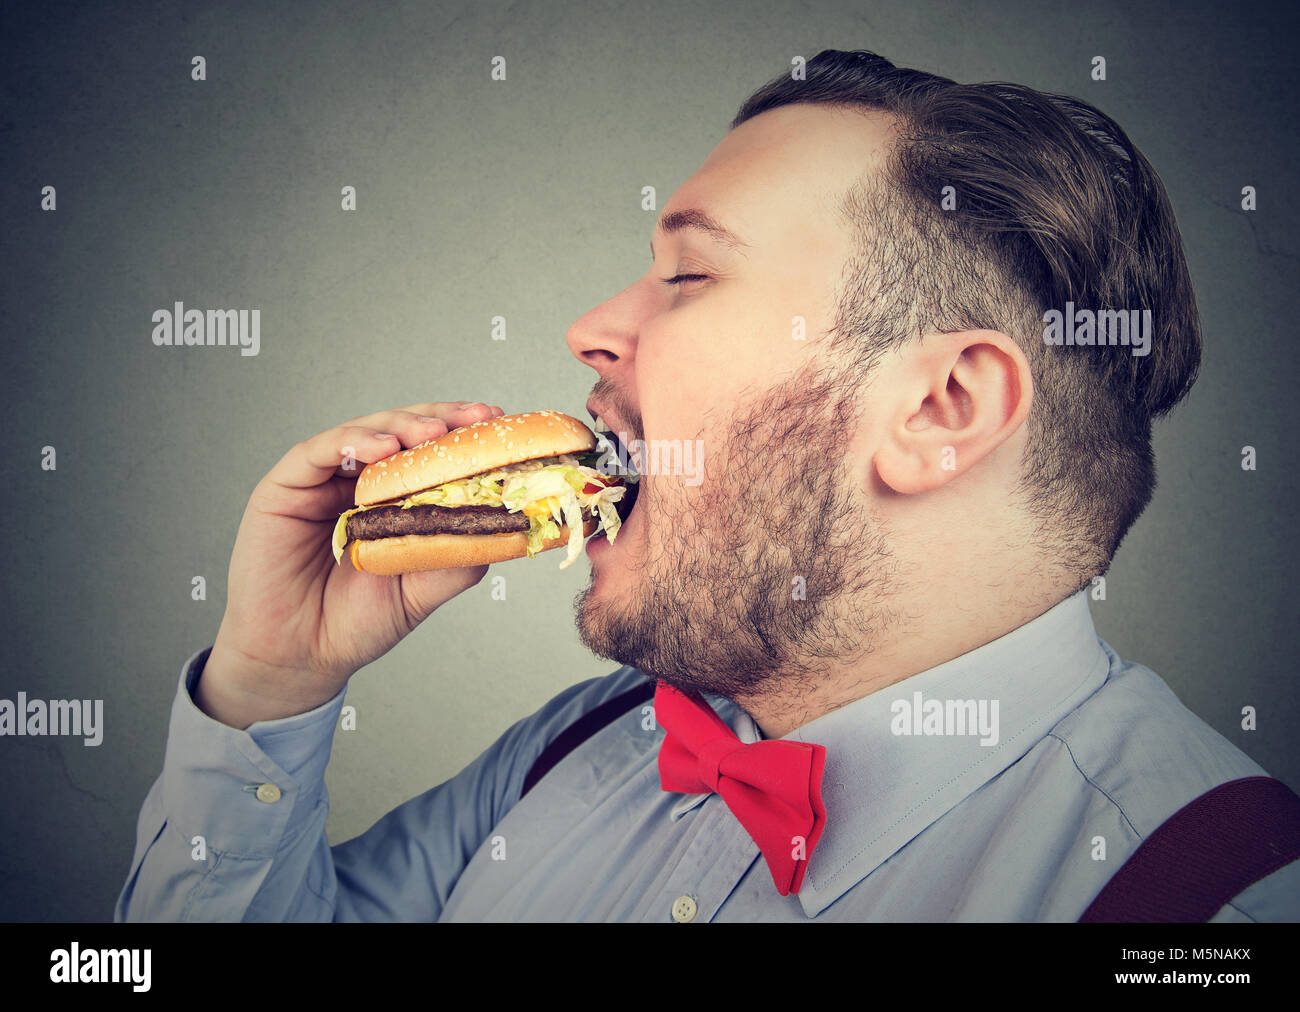 Side profile of a fat man eating a juicy hamburger - Stock Image